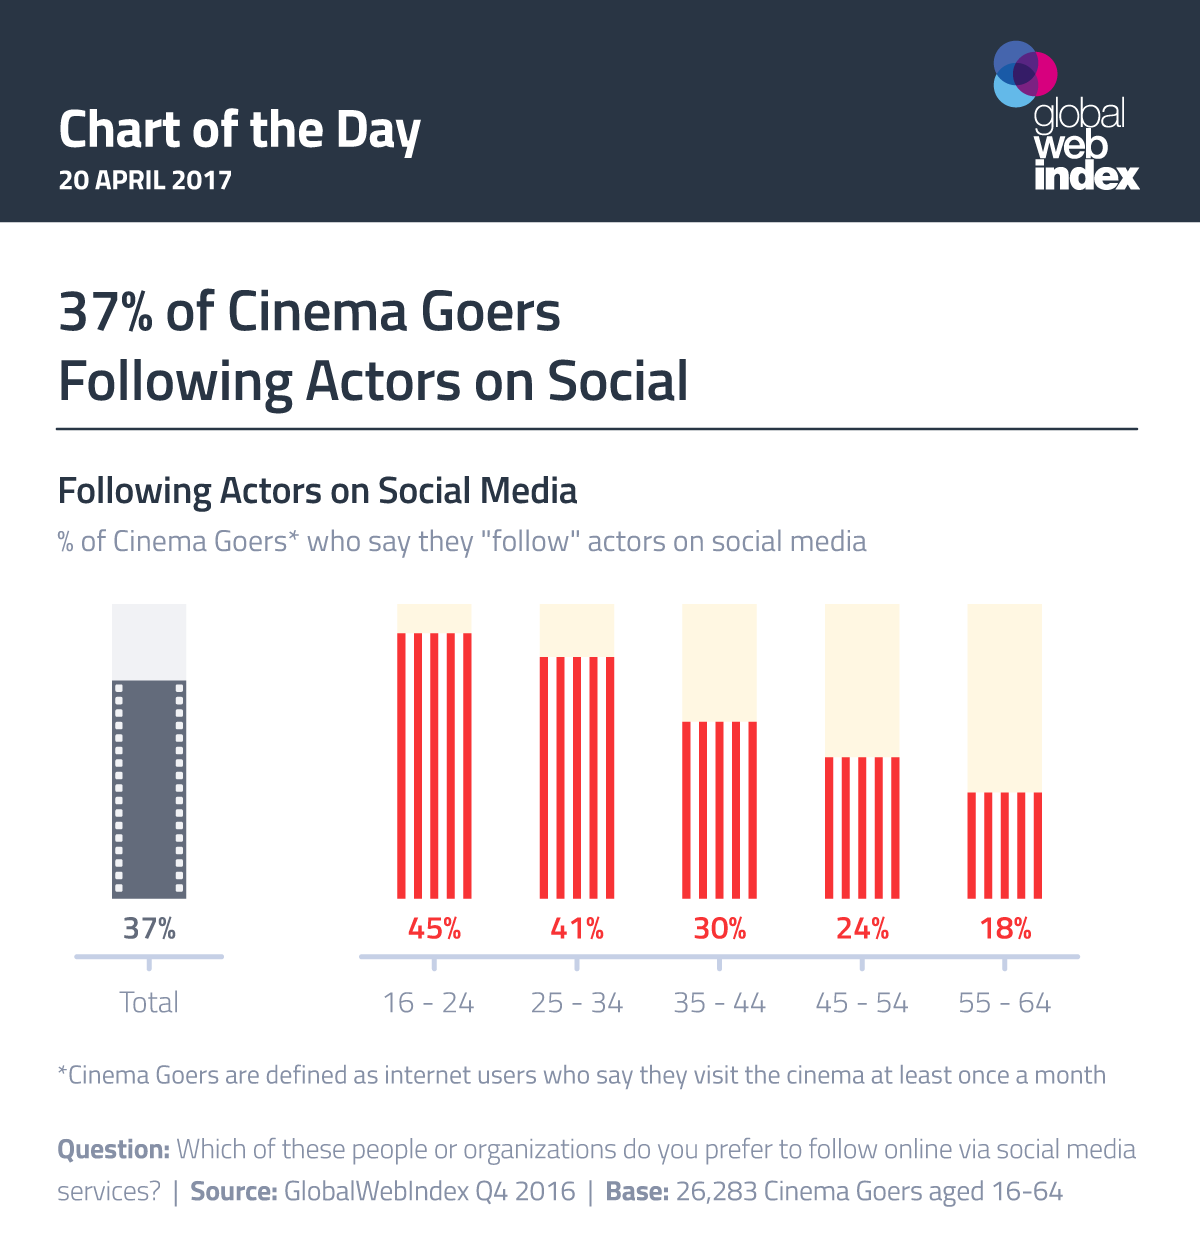 37% of Cinema Goers Following Actors on Social